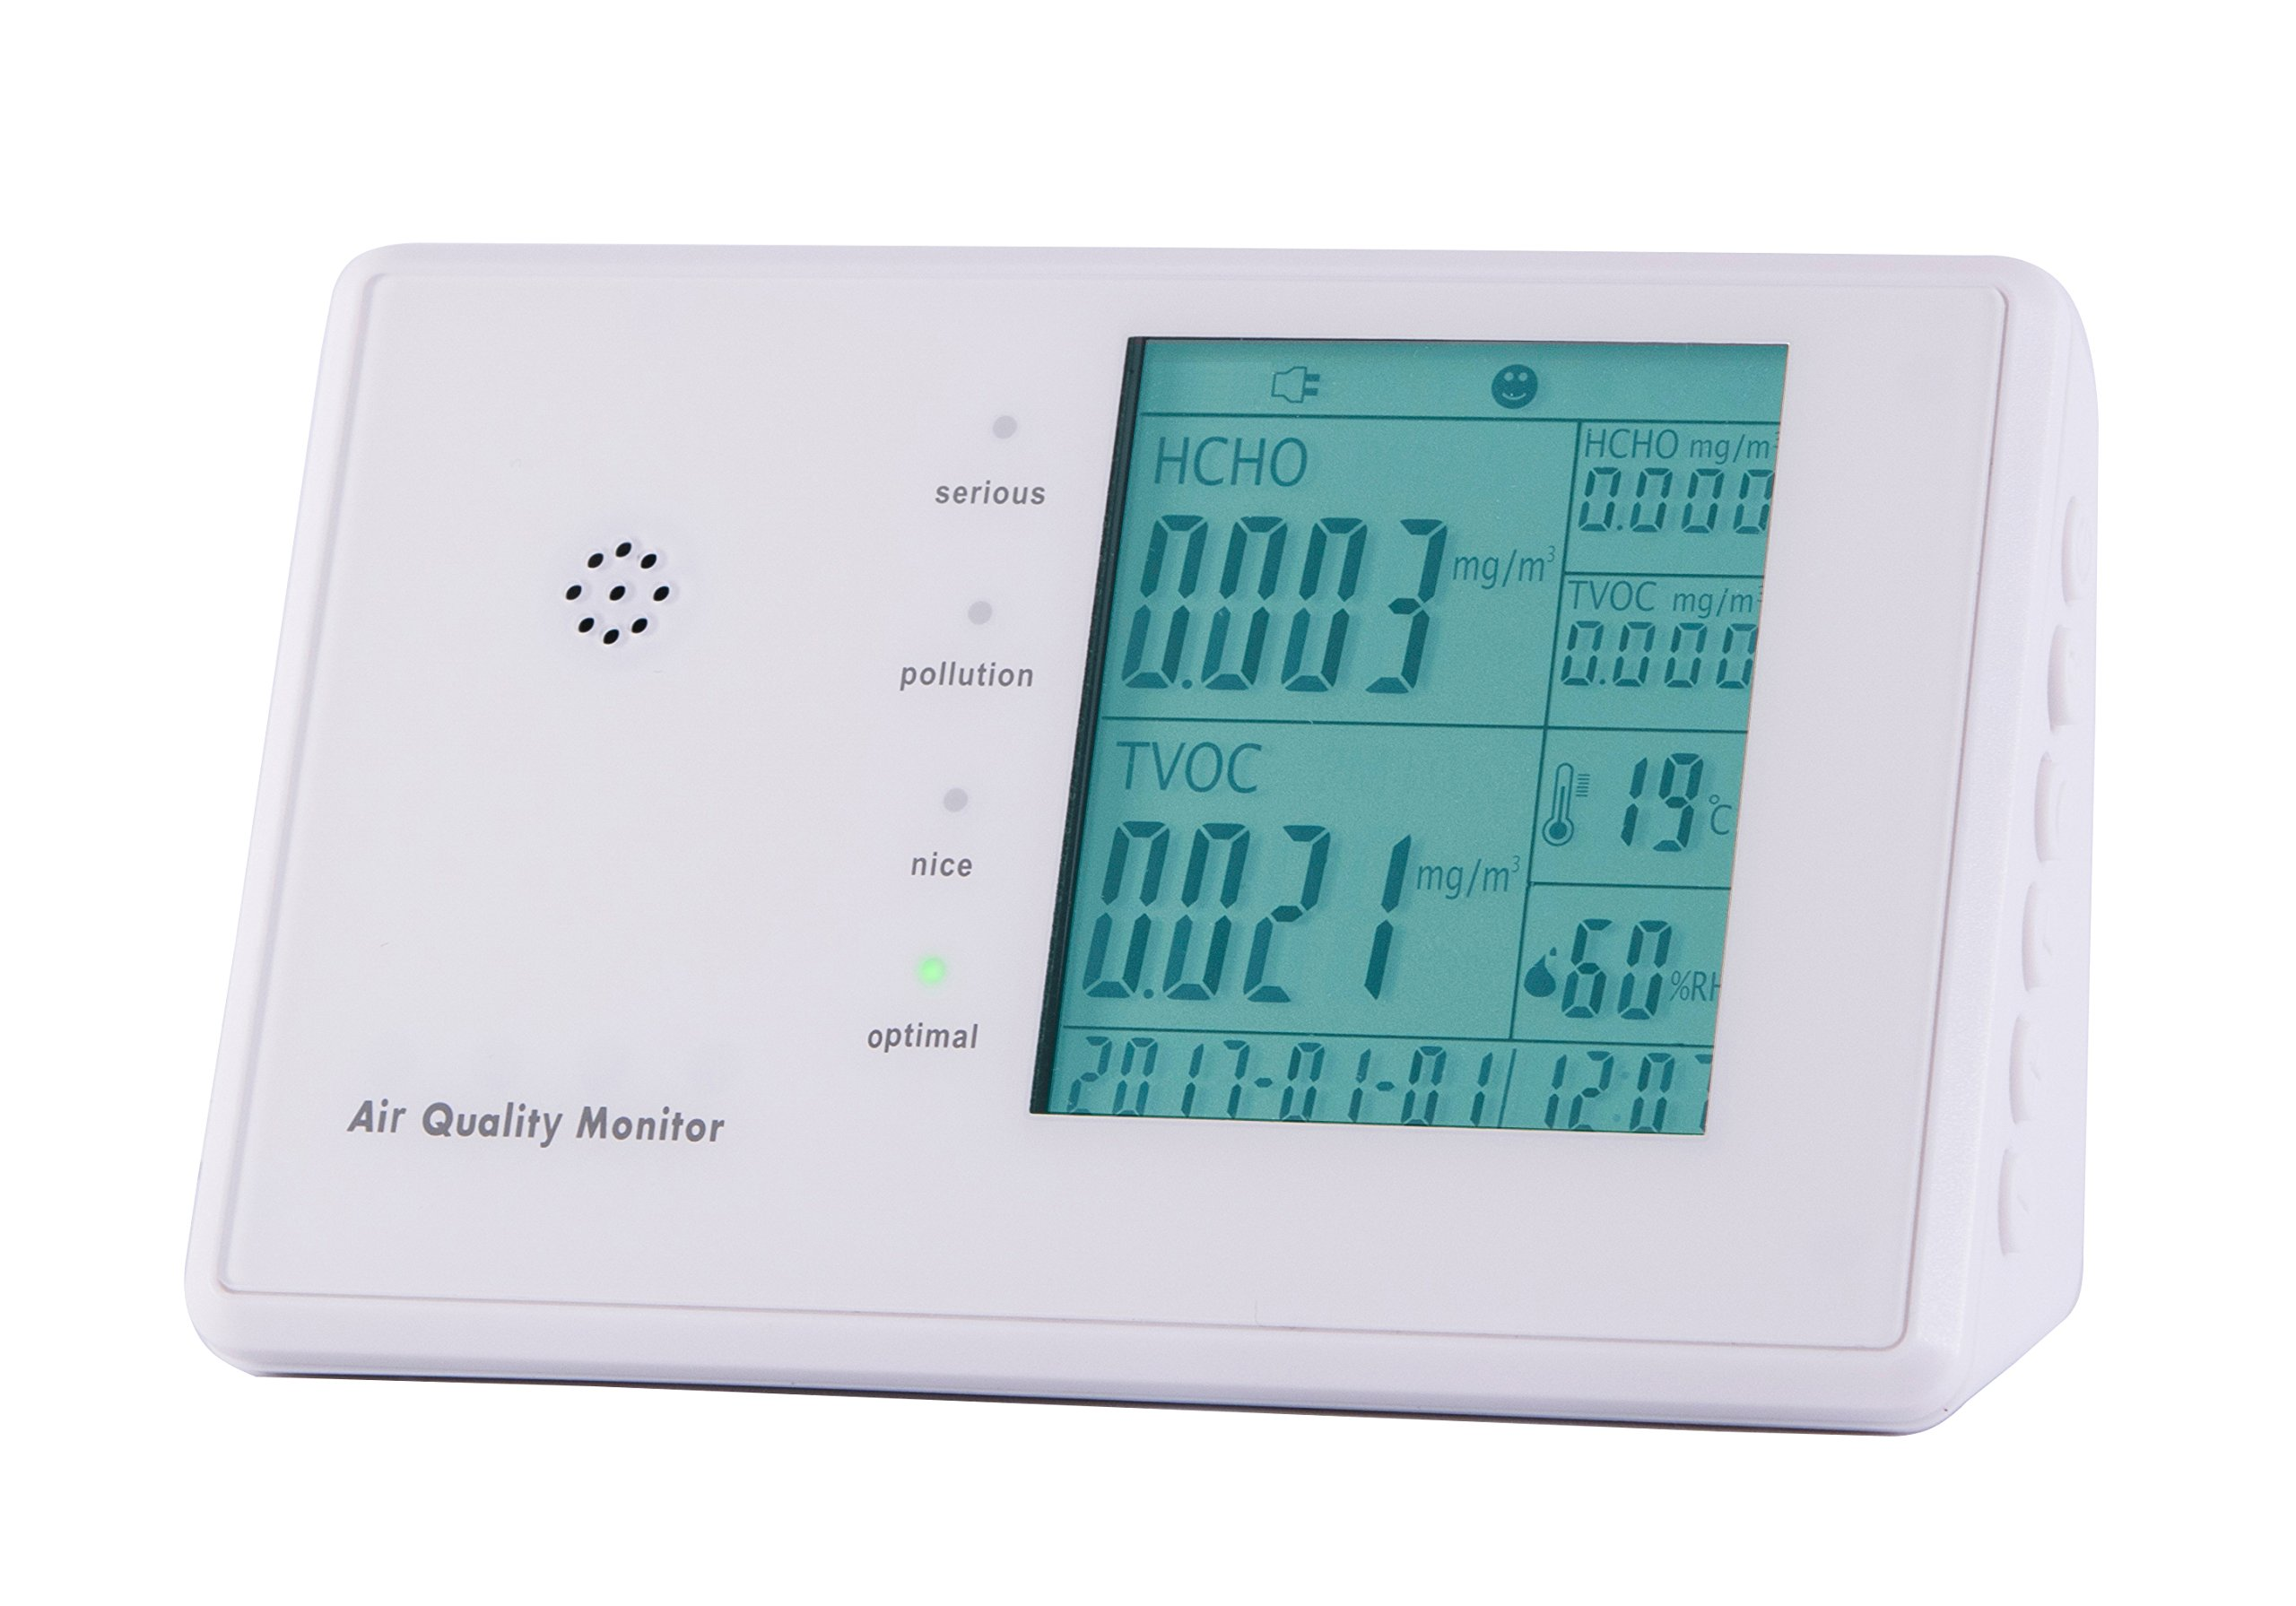 6 in 1 Multifunctional Indoor Air Quality Monitor – Track What's in the Air that Surrounds You